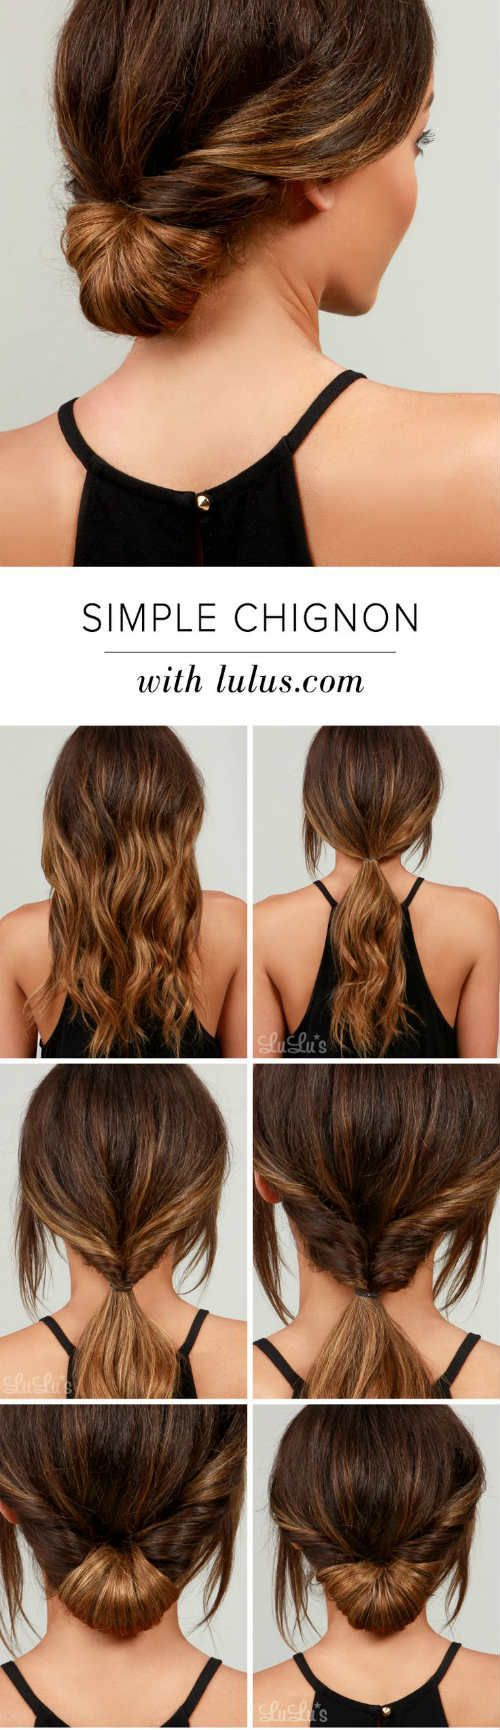 simple but elegant hairstyle tutorials for prom night